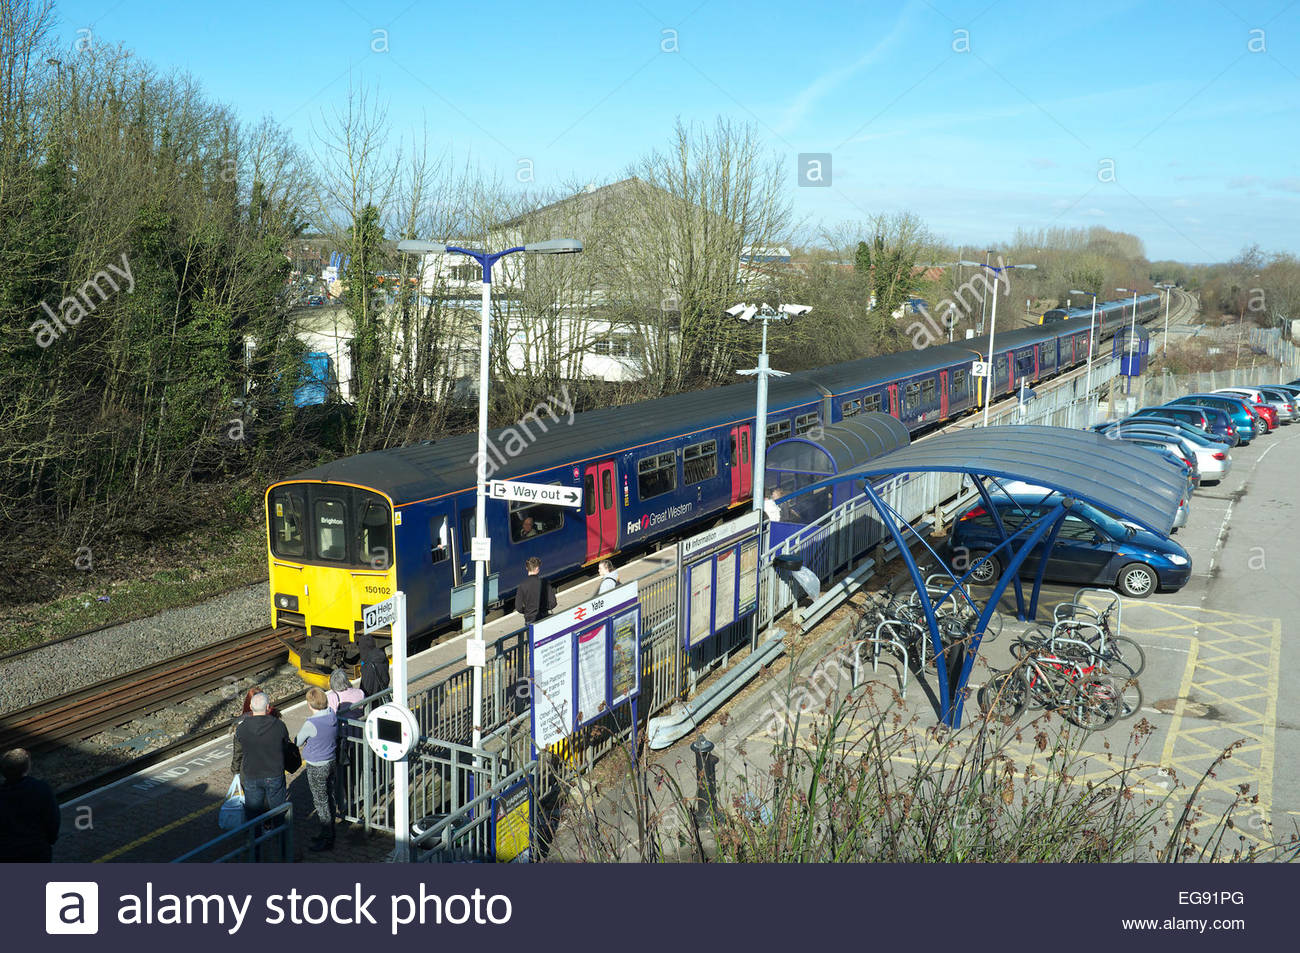 A Great Malvern to Brighton train service calls at Yate railway station (near Bristol), in South Gloucestershire, - Stock Image